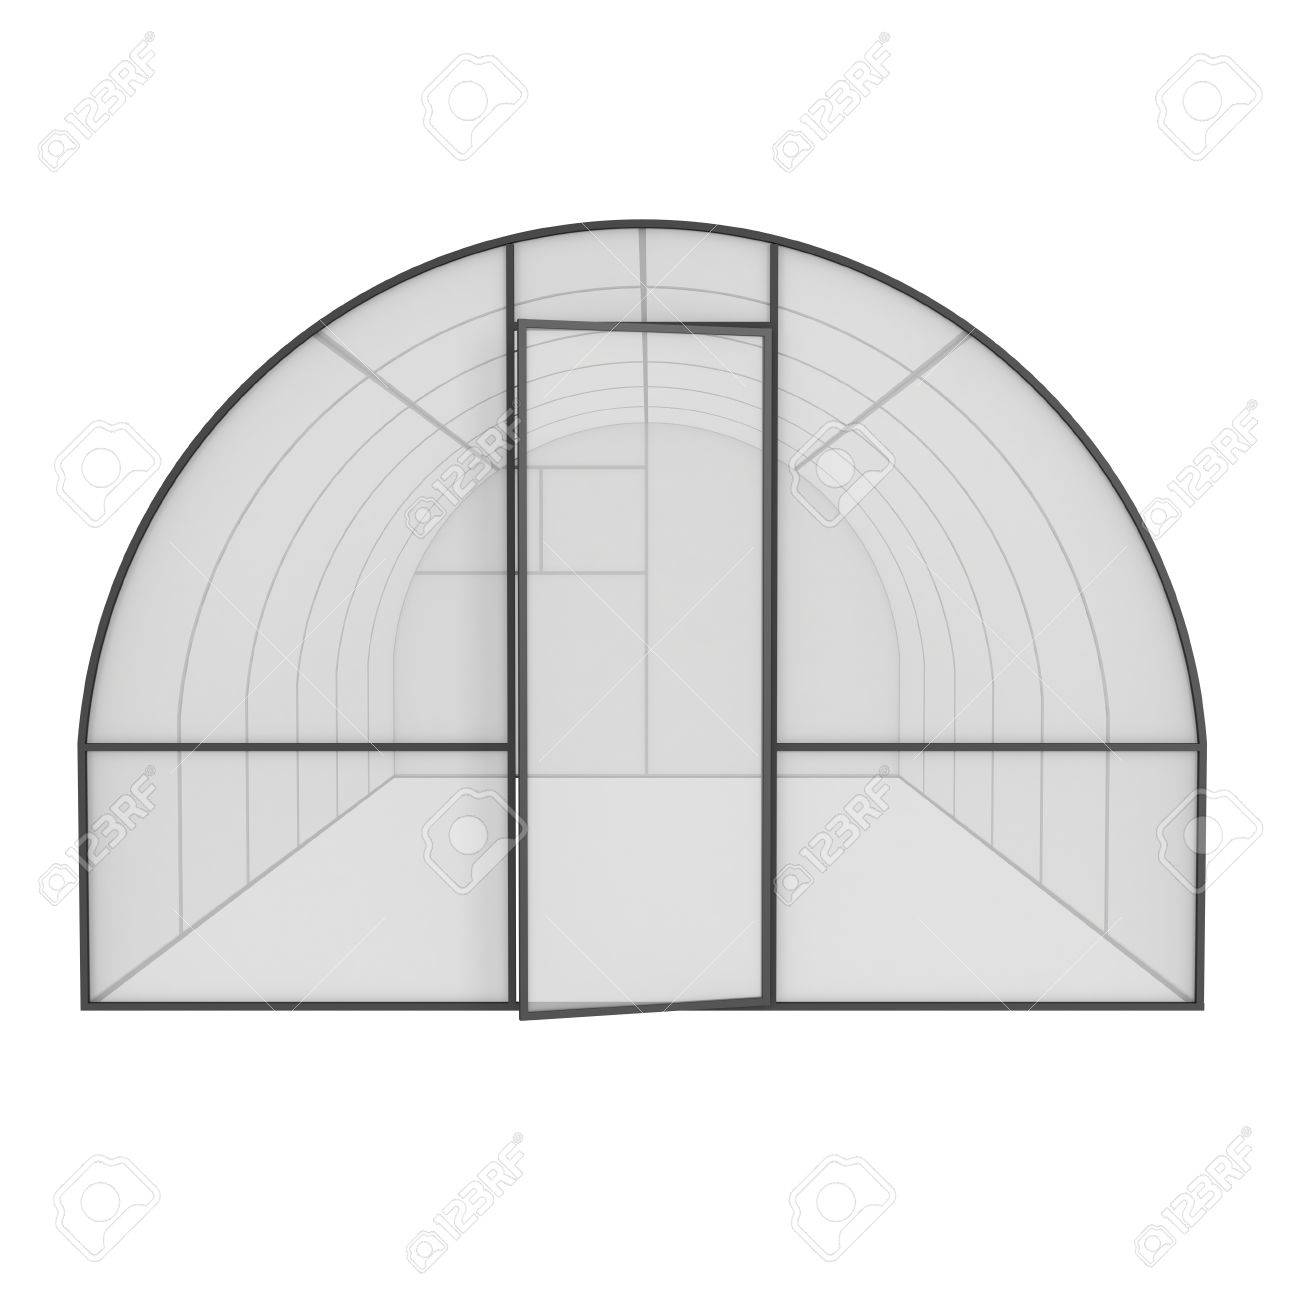 Greenhouse Construction Frame. Hothouse Building Object. Warm ...